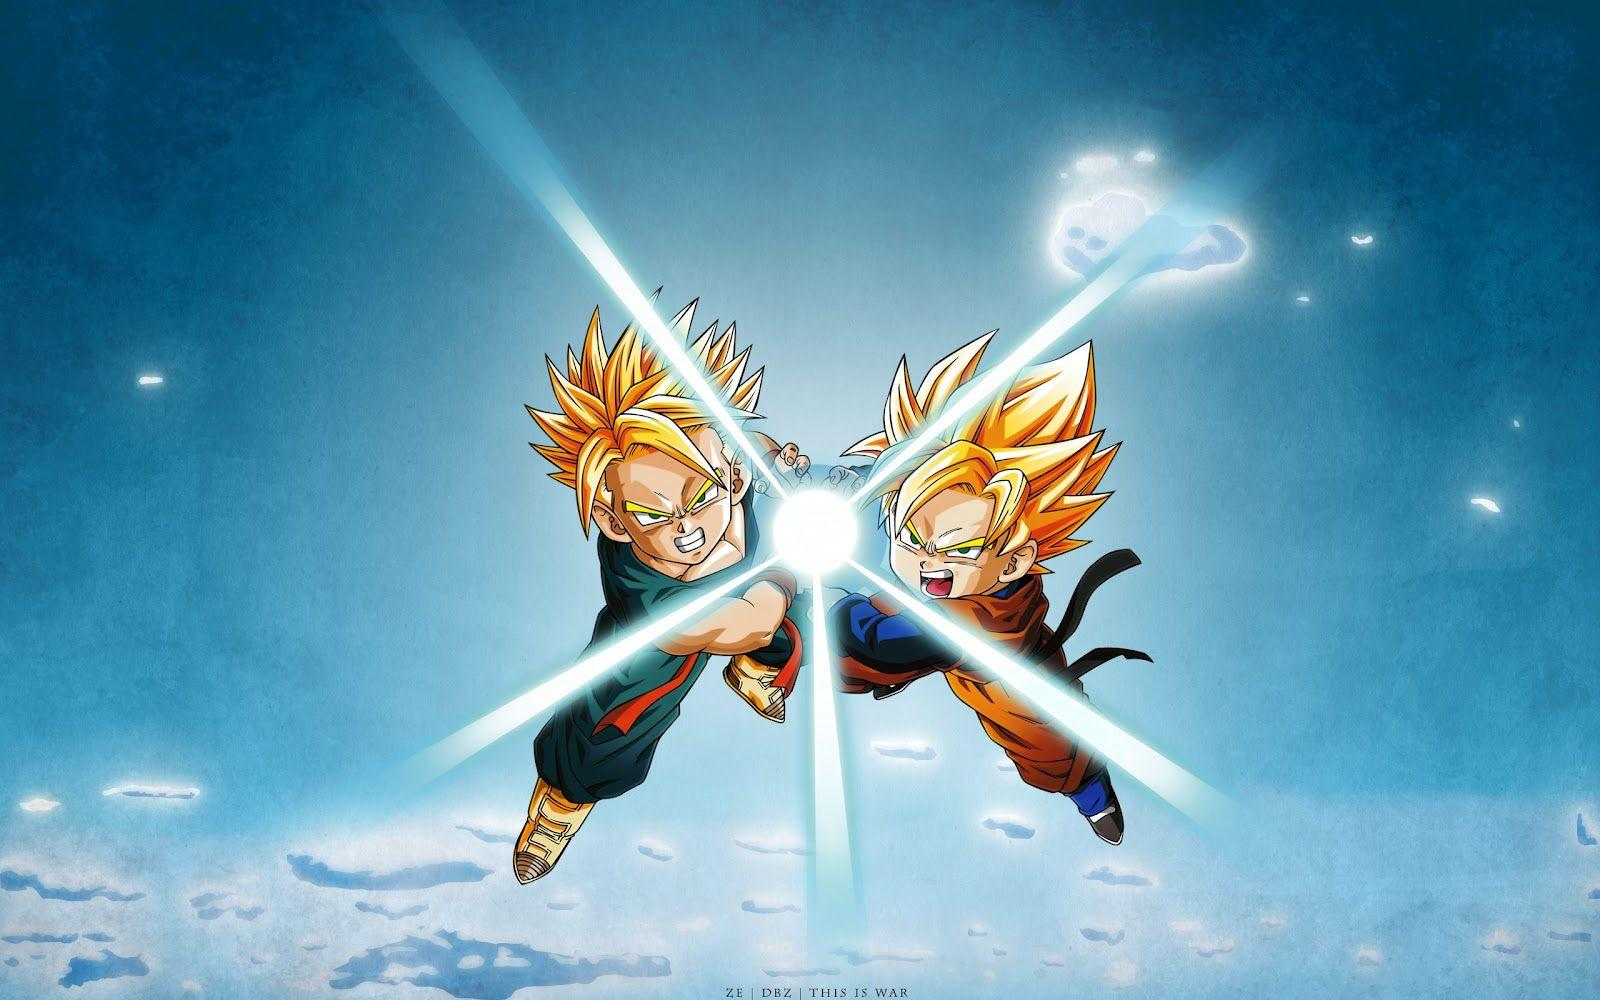 DRAGON BALL Z WALLPAPERS: Kid Trunks super saiyan 1